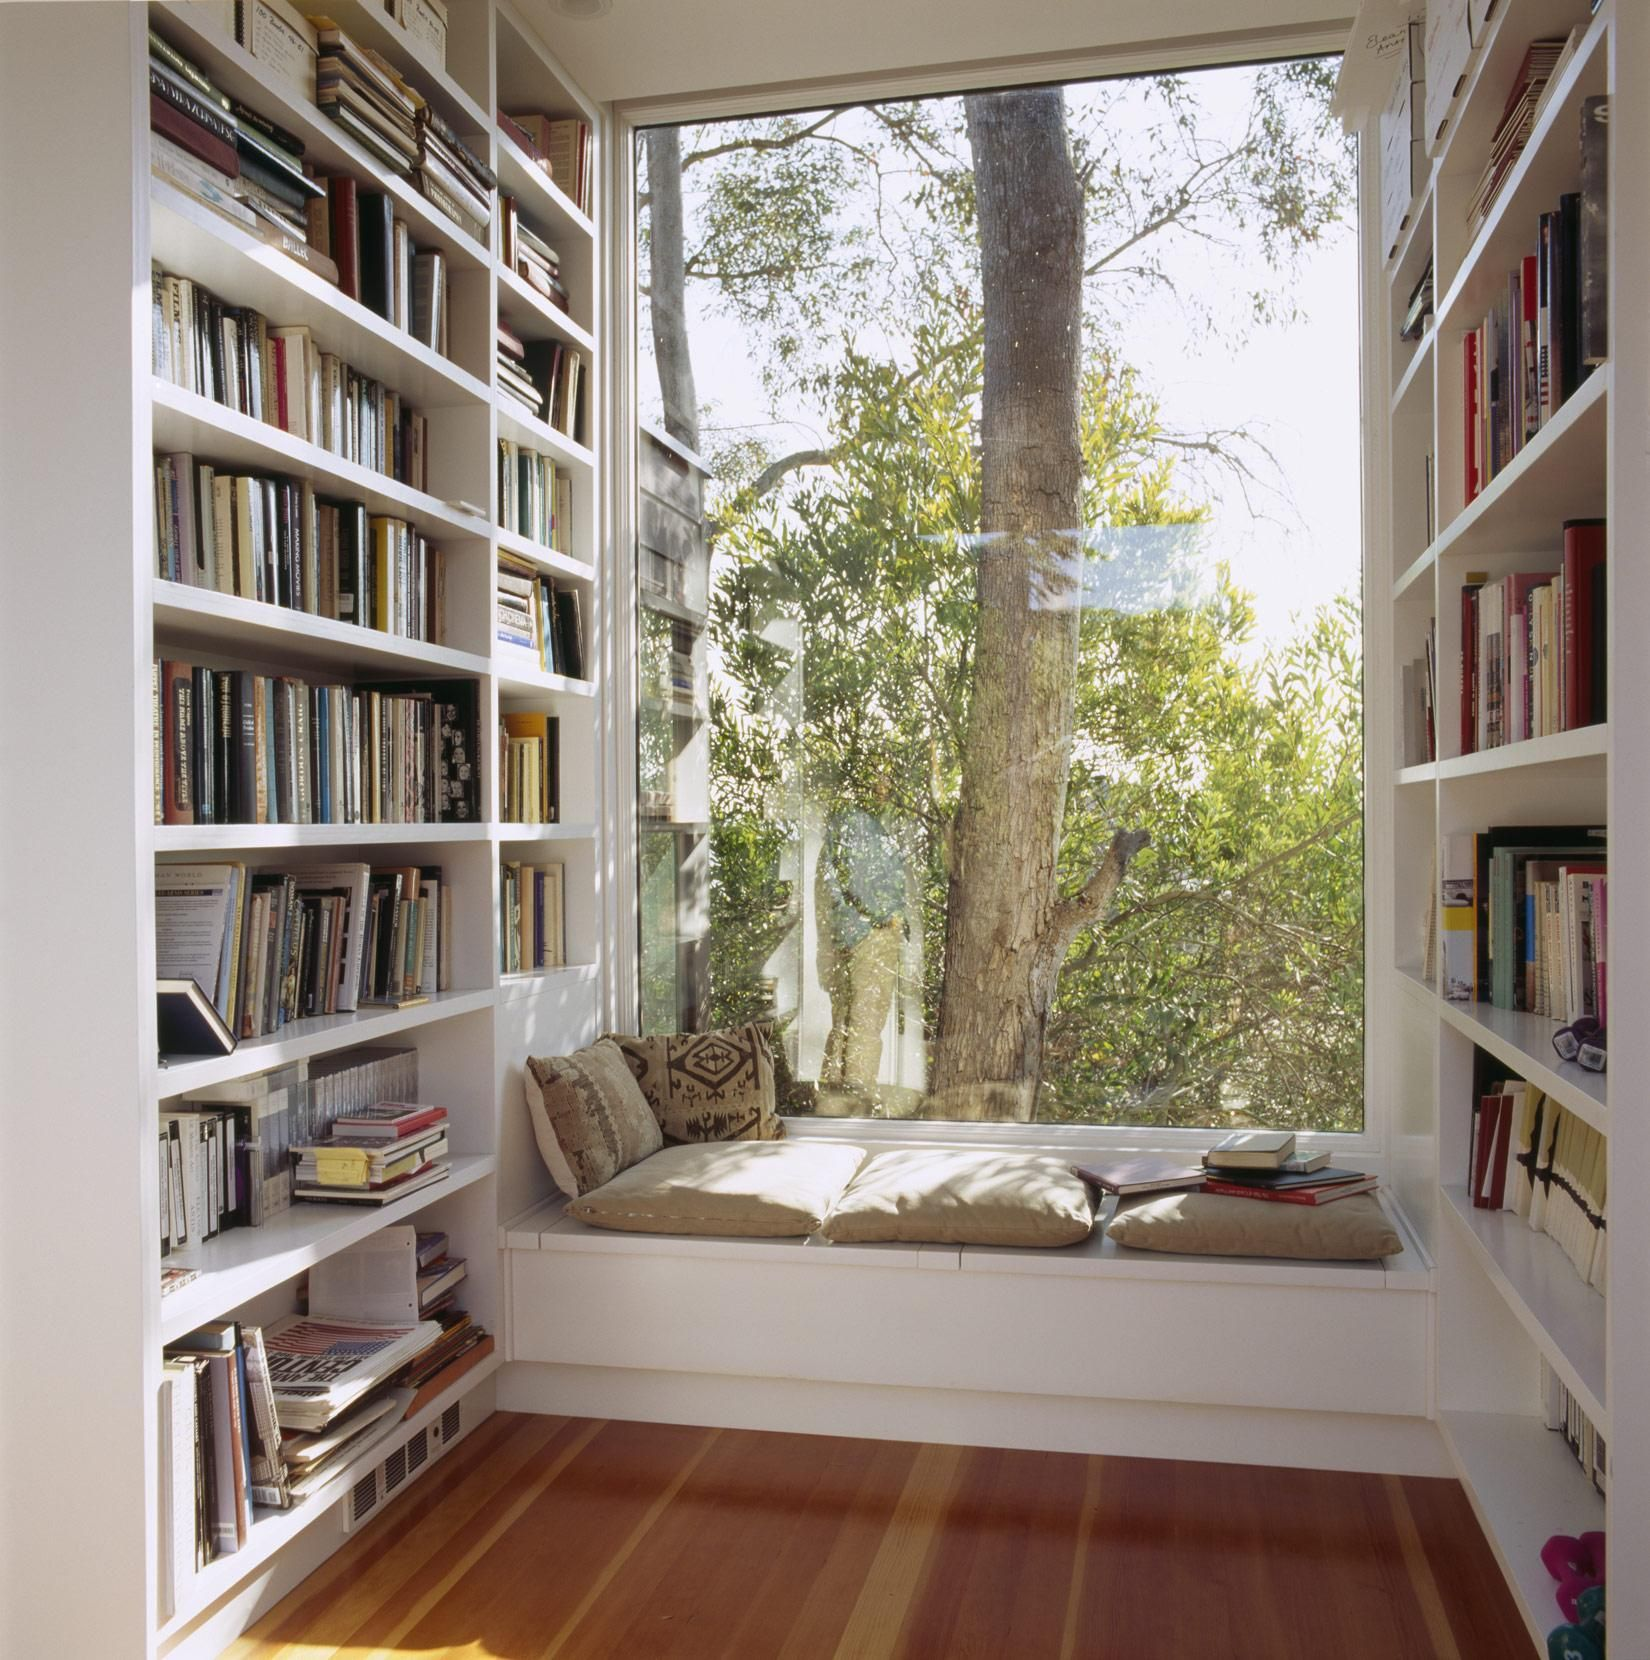 Book nook products i love pinterest book nooks books and spaces